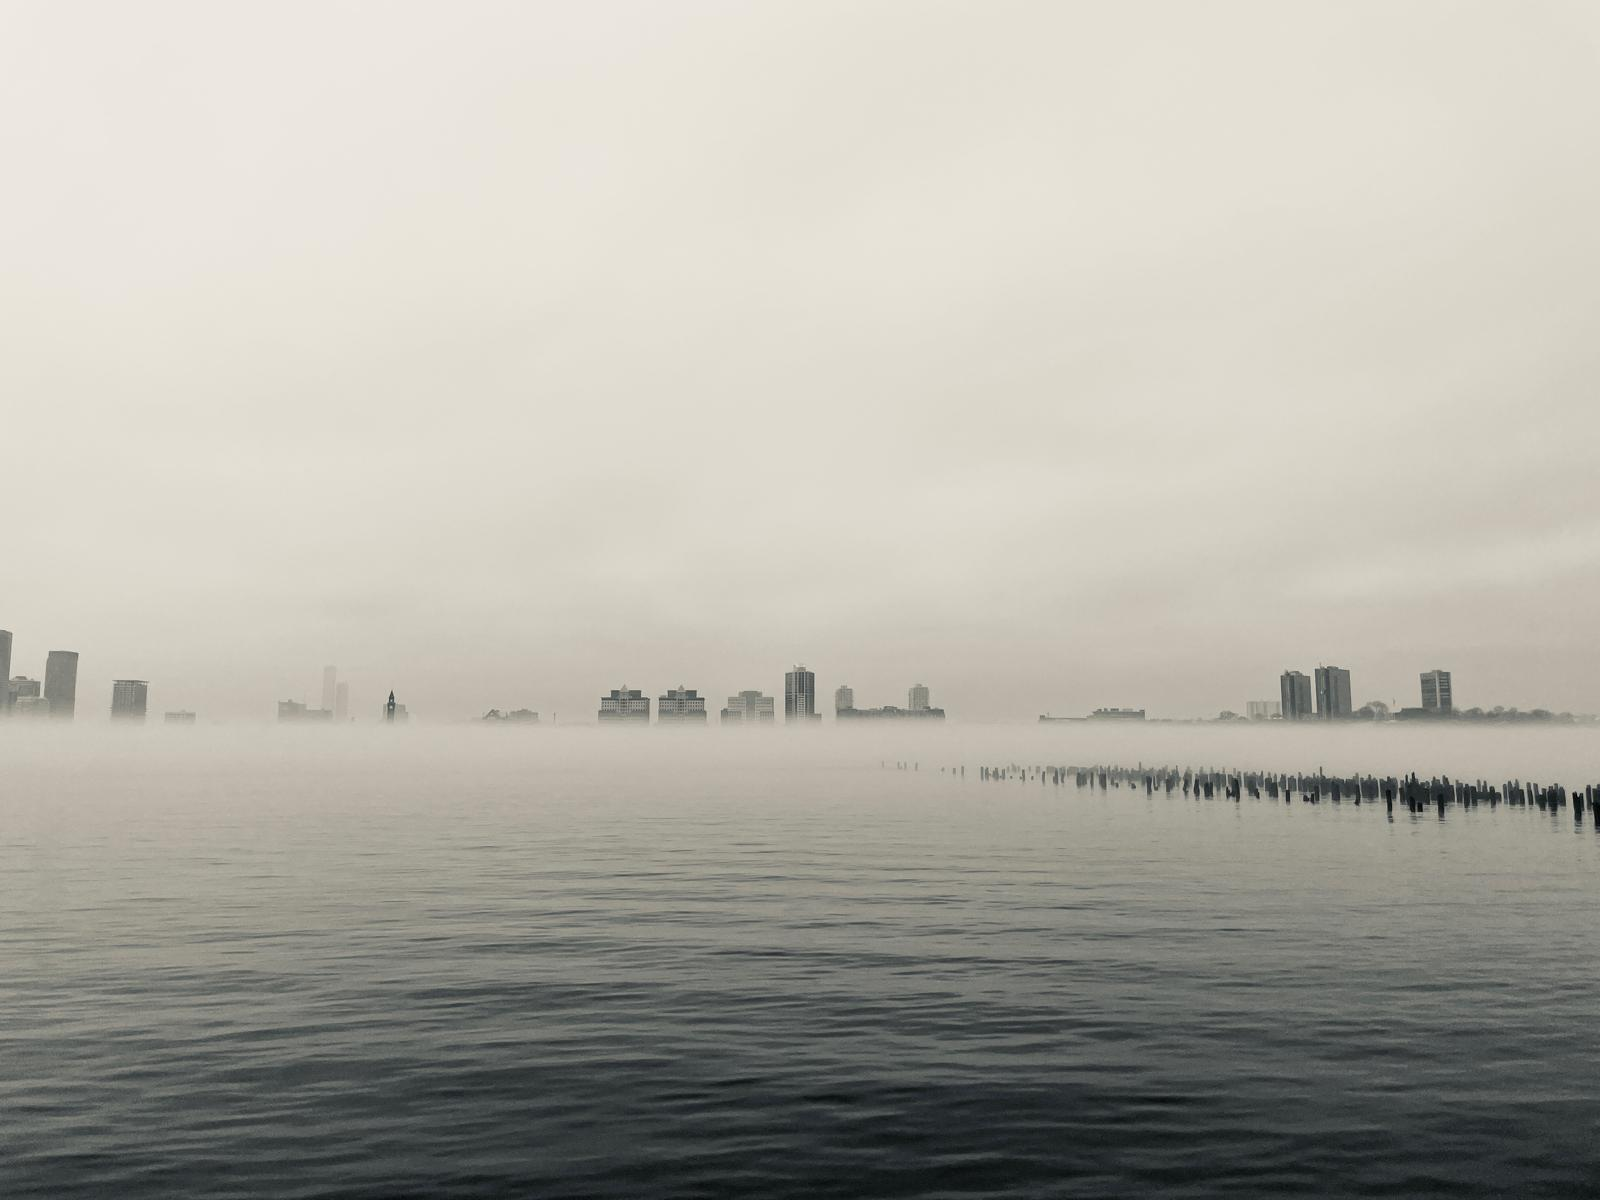 A Foggy Portrait of the Hudson River